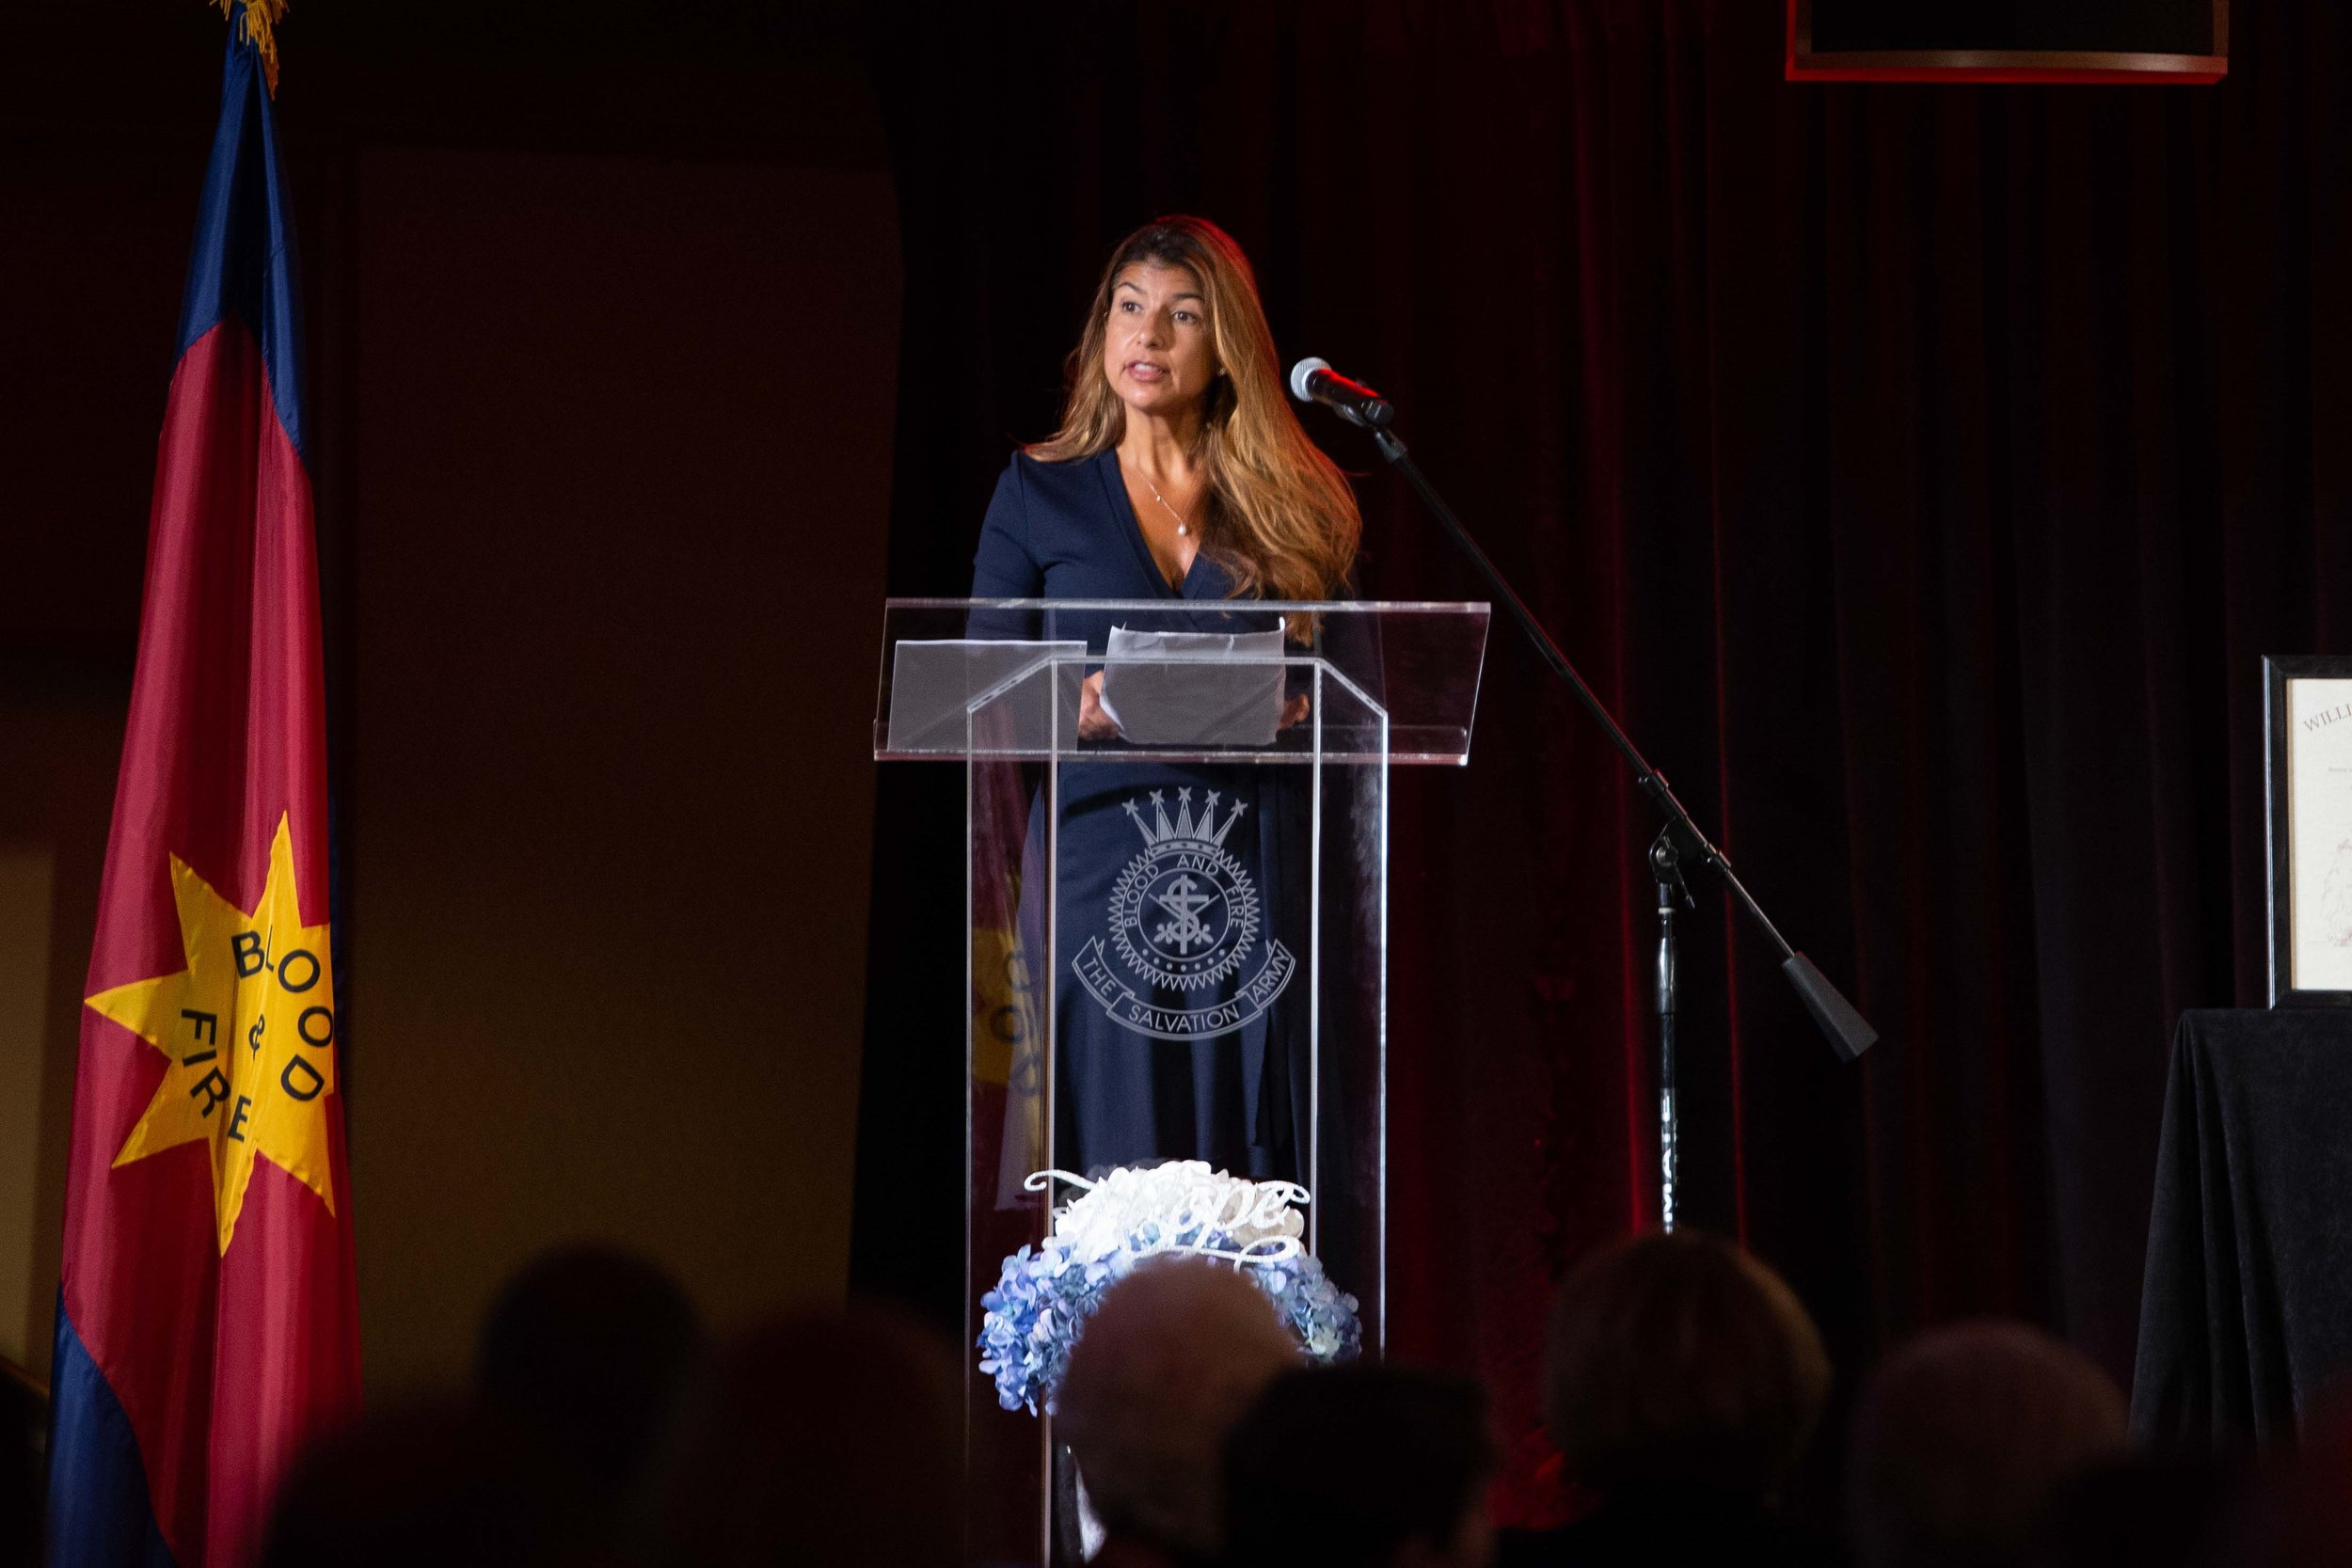 Michelle Jackson Salvation Army Civic Luncheon 2018.jpg